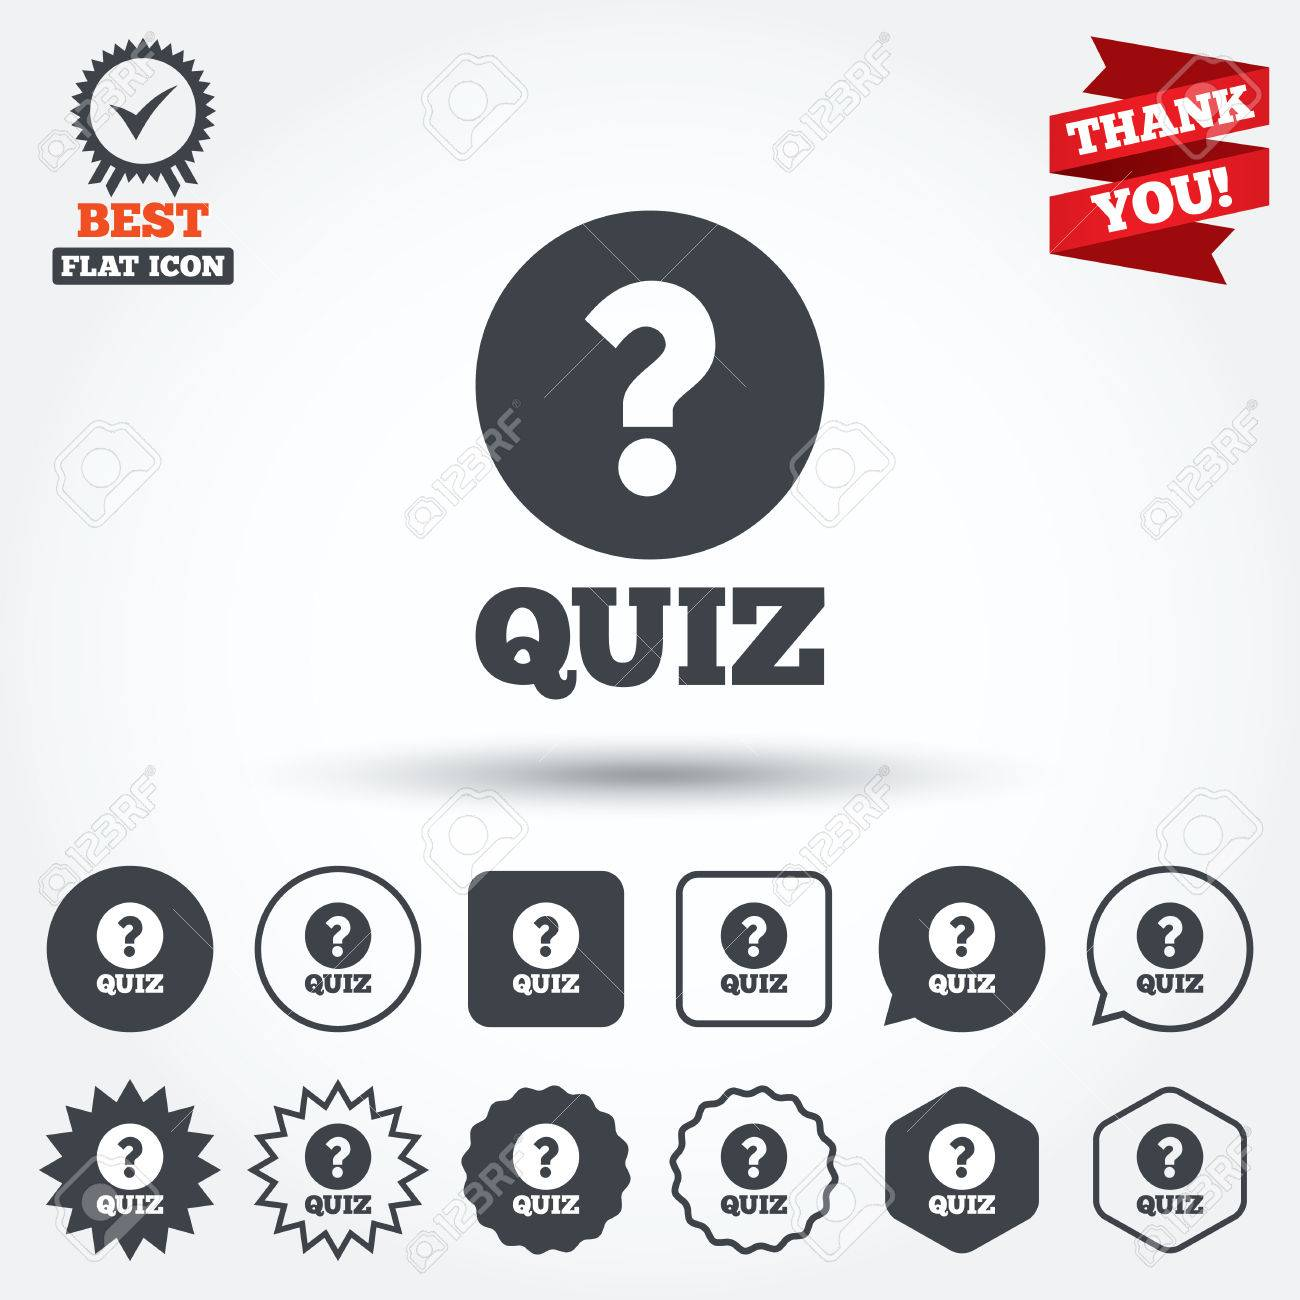 quiz question mark sign icon questions and answers game quiz question mark sign icon questions and answers game symbol circle star